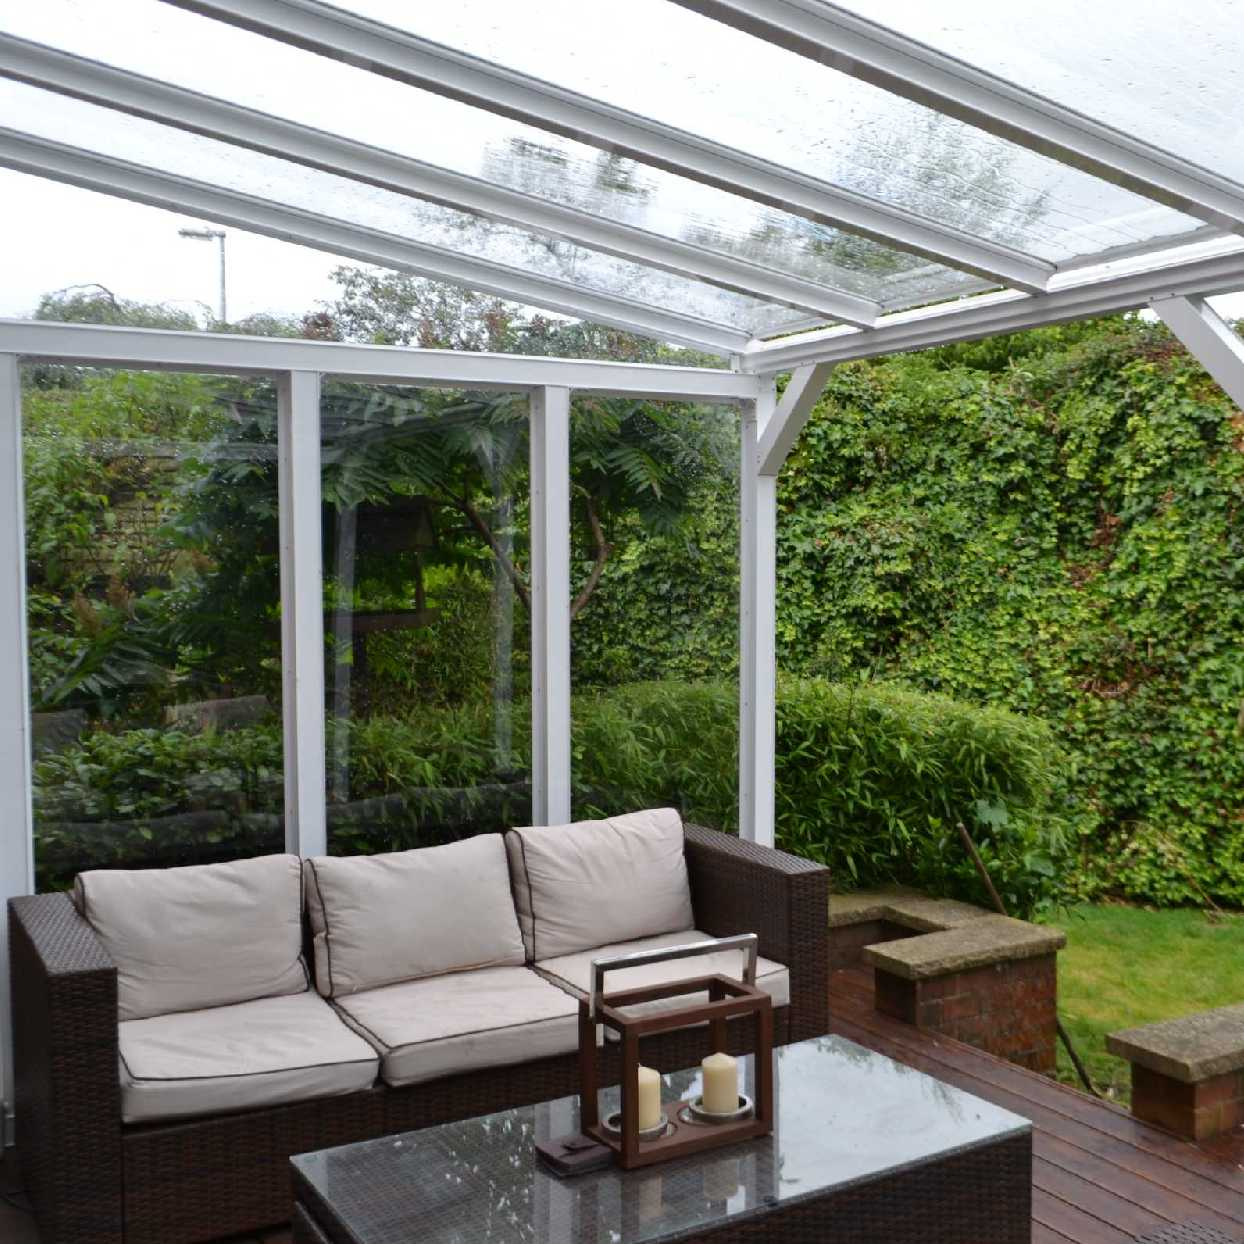 Great selection of Omega Smart Lean-To Canopy with 16mm Polycarbonate Glazing - 7.4m (W) x 4.5m (P), (4) Supporting Posts